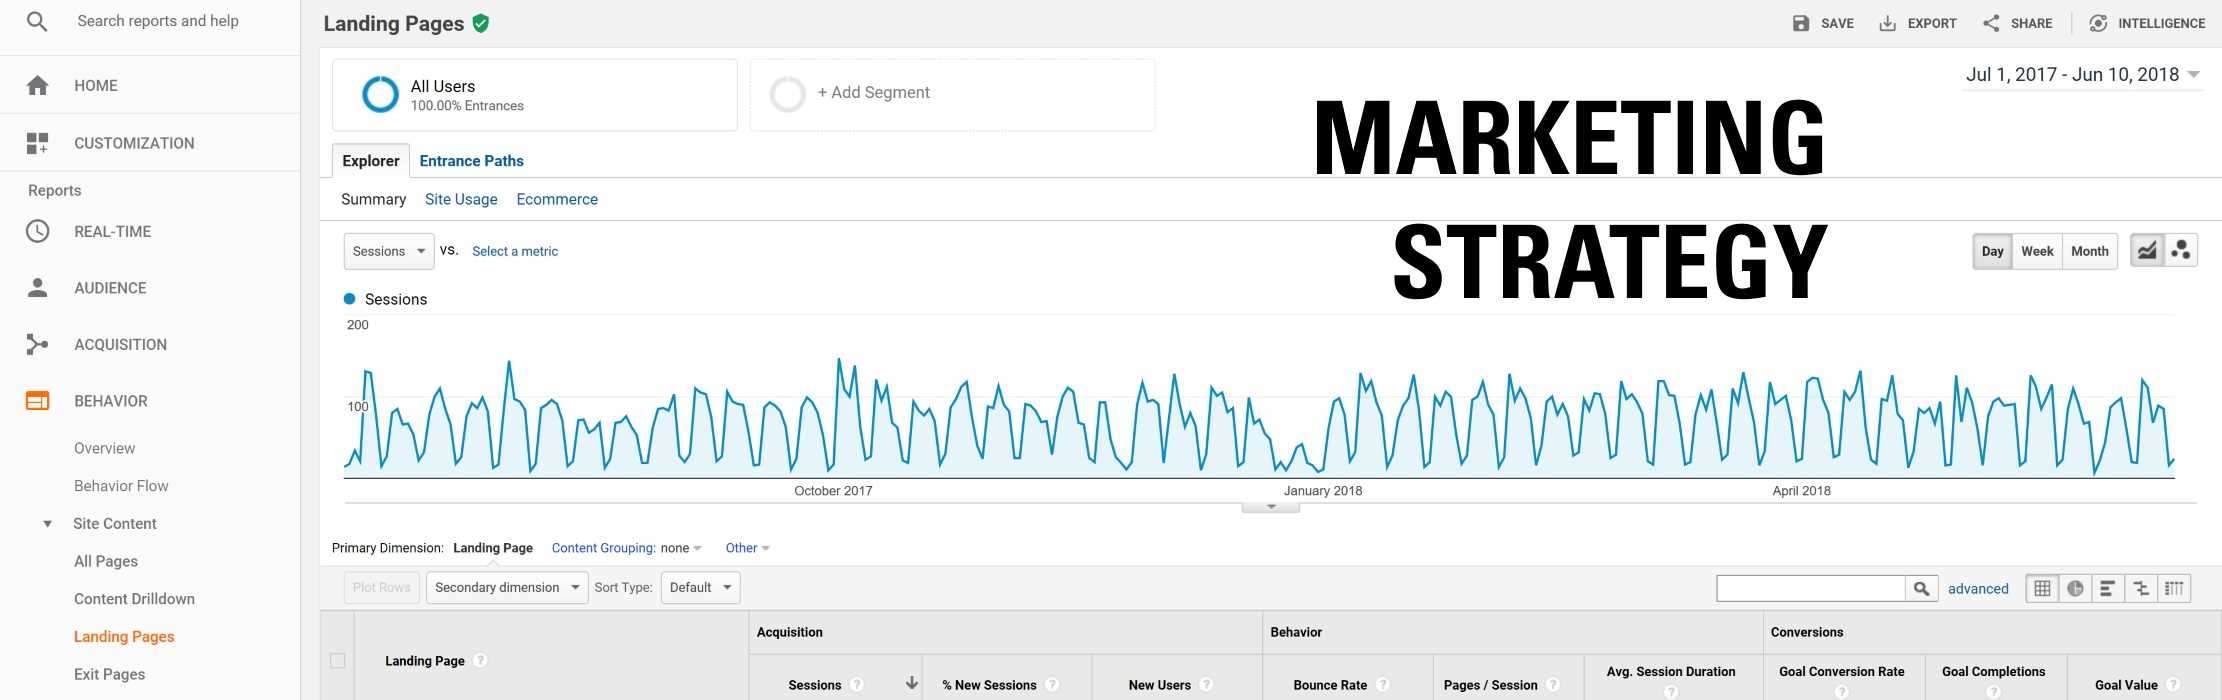 Google Analytics graph: Marketing Strategy.